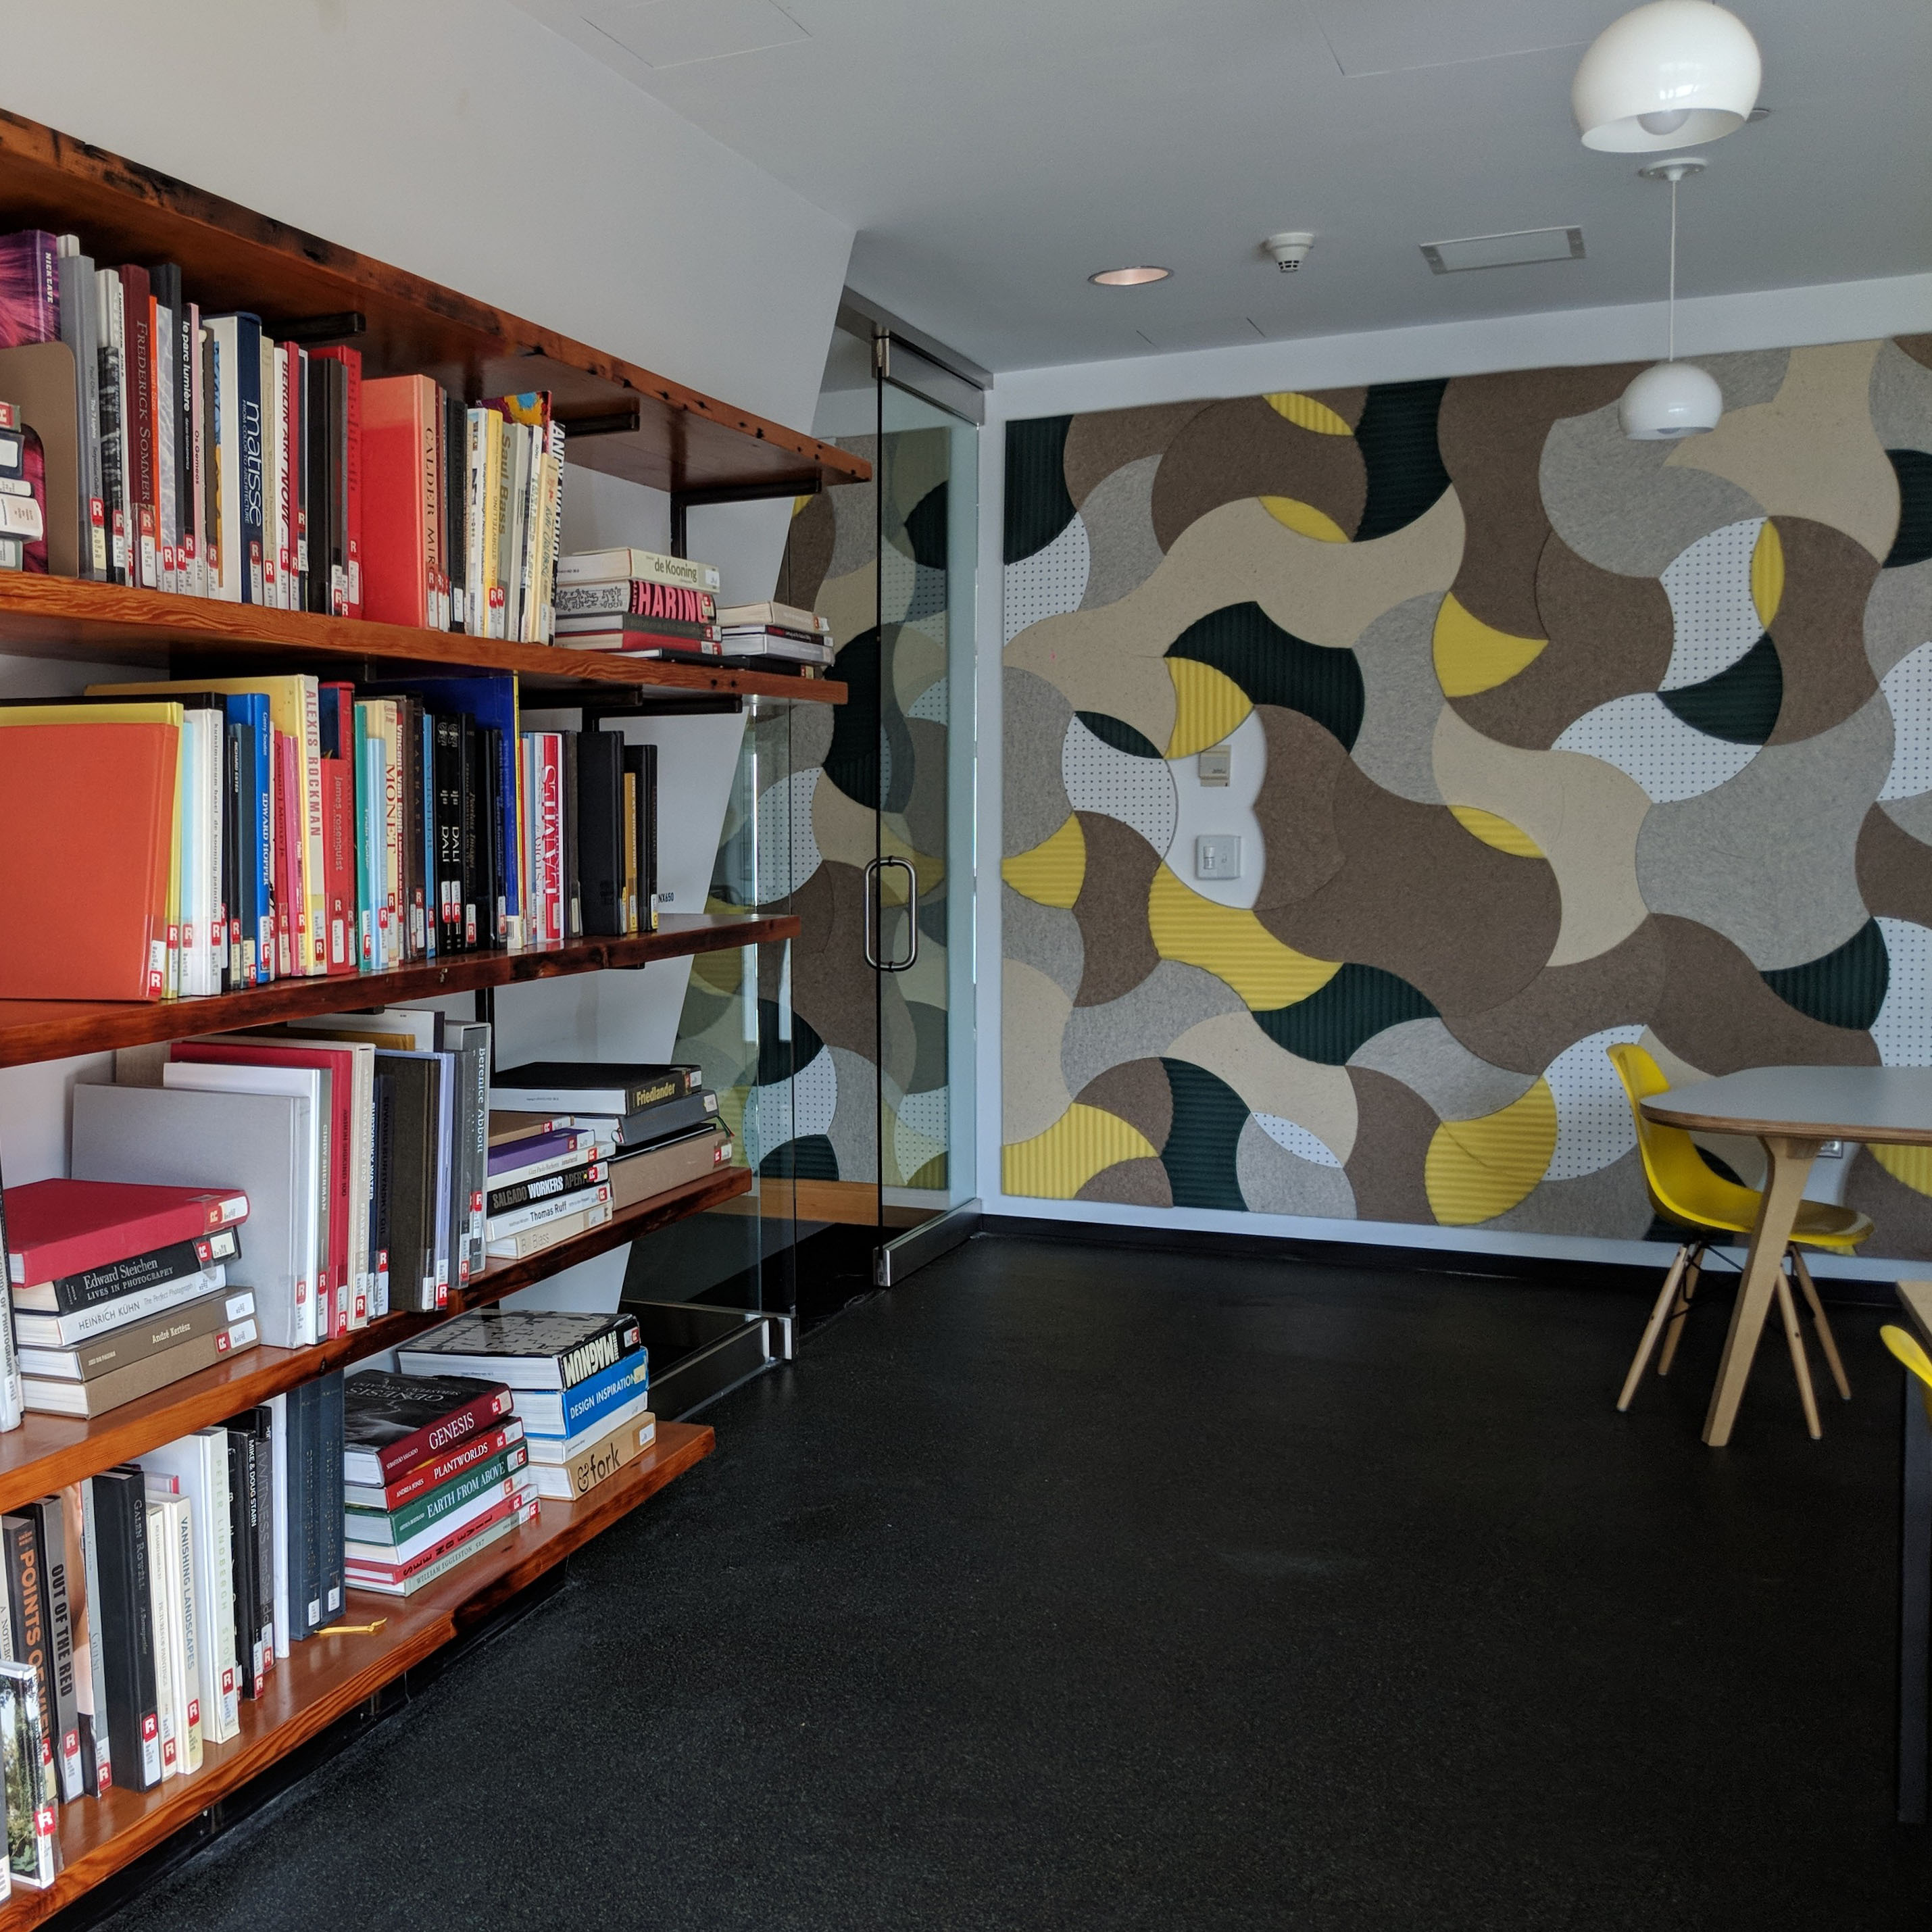 image of library shelves